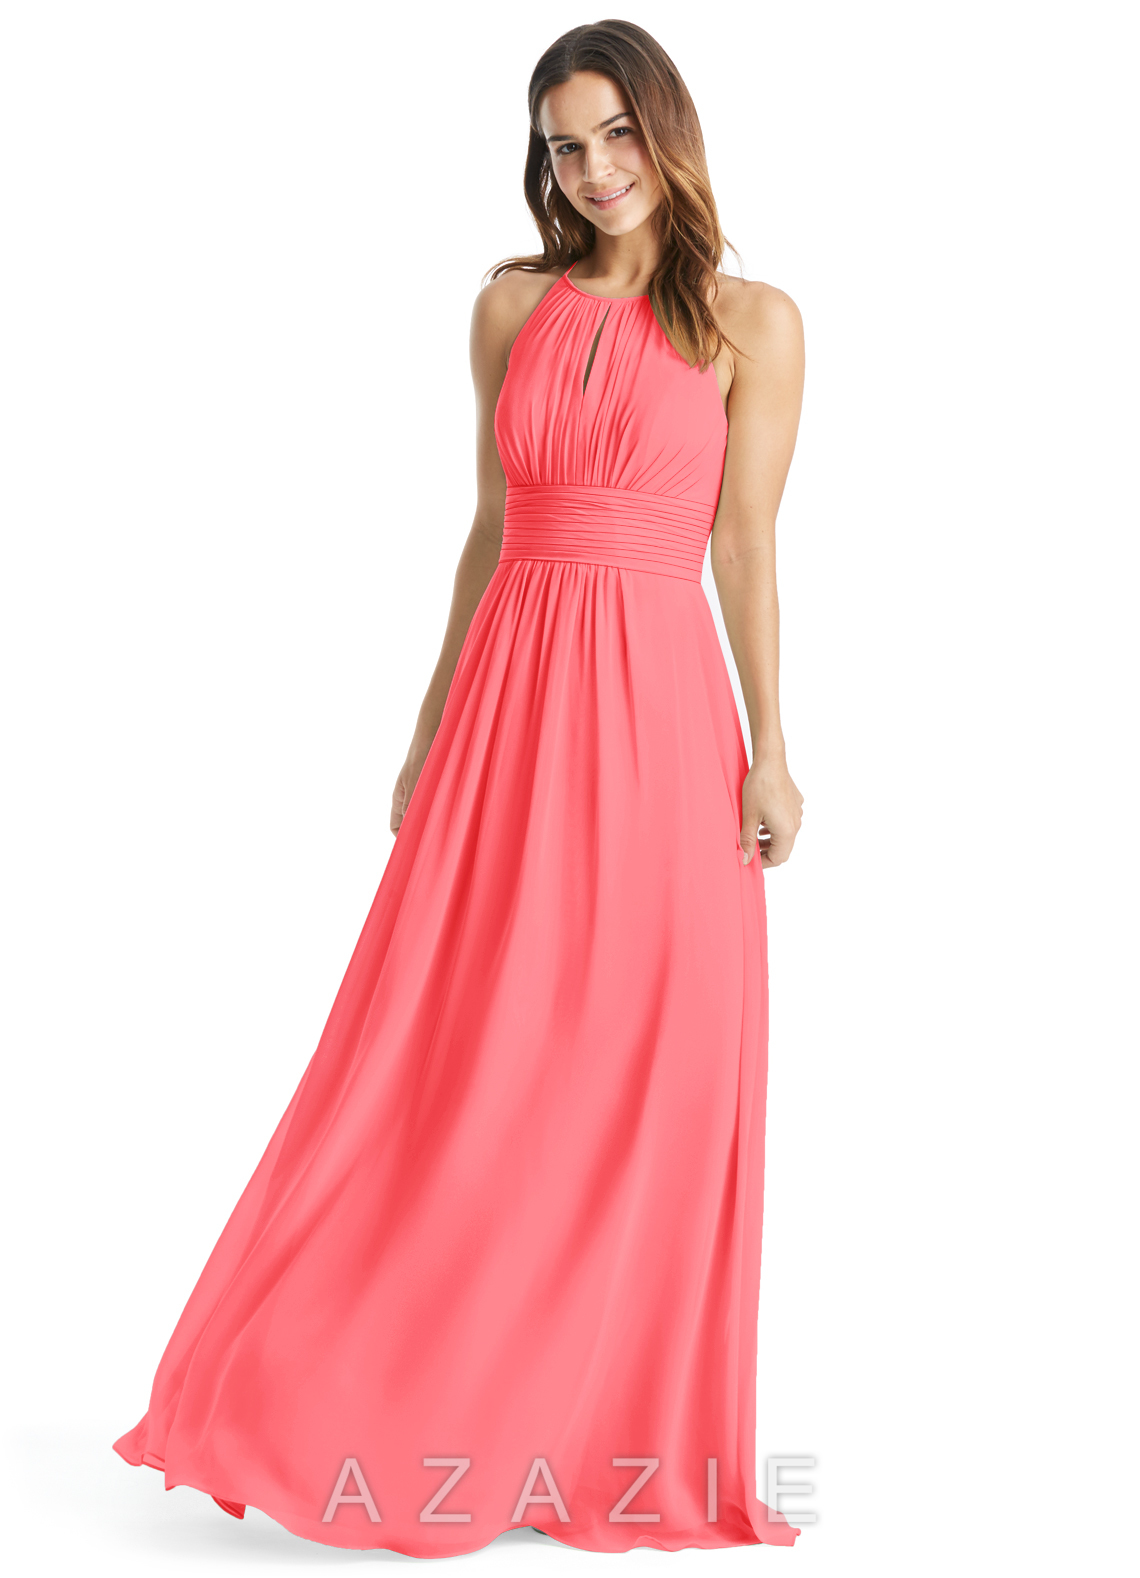 Azazie bonnie bridesmaid dress azazie color watermelon ombrellifo Images